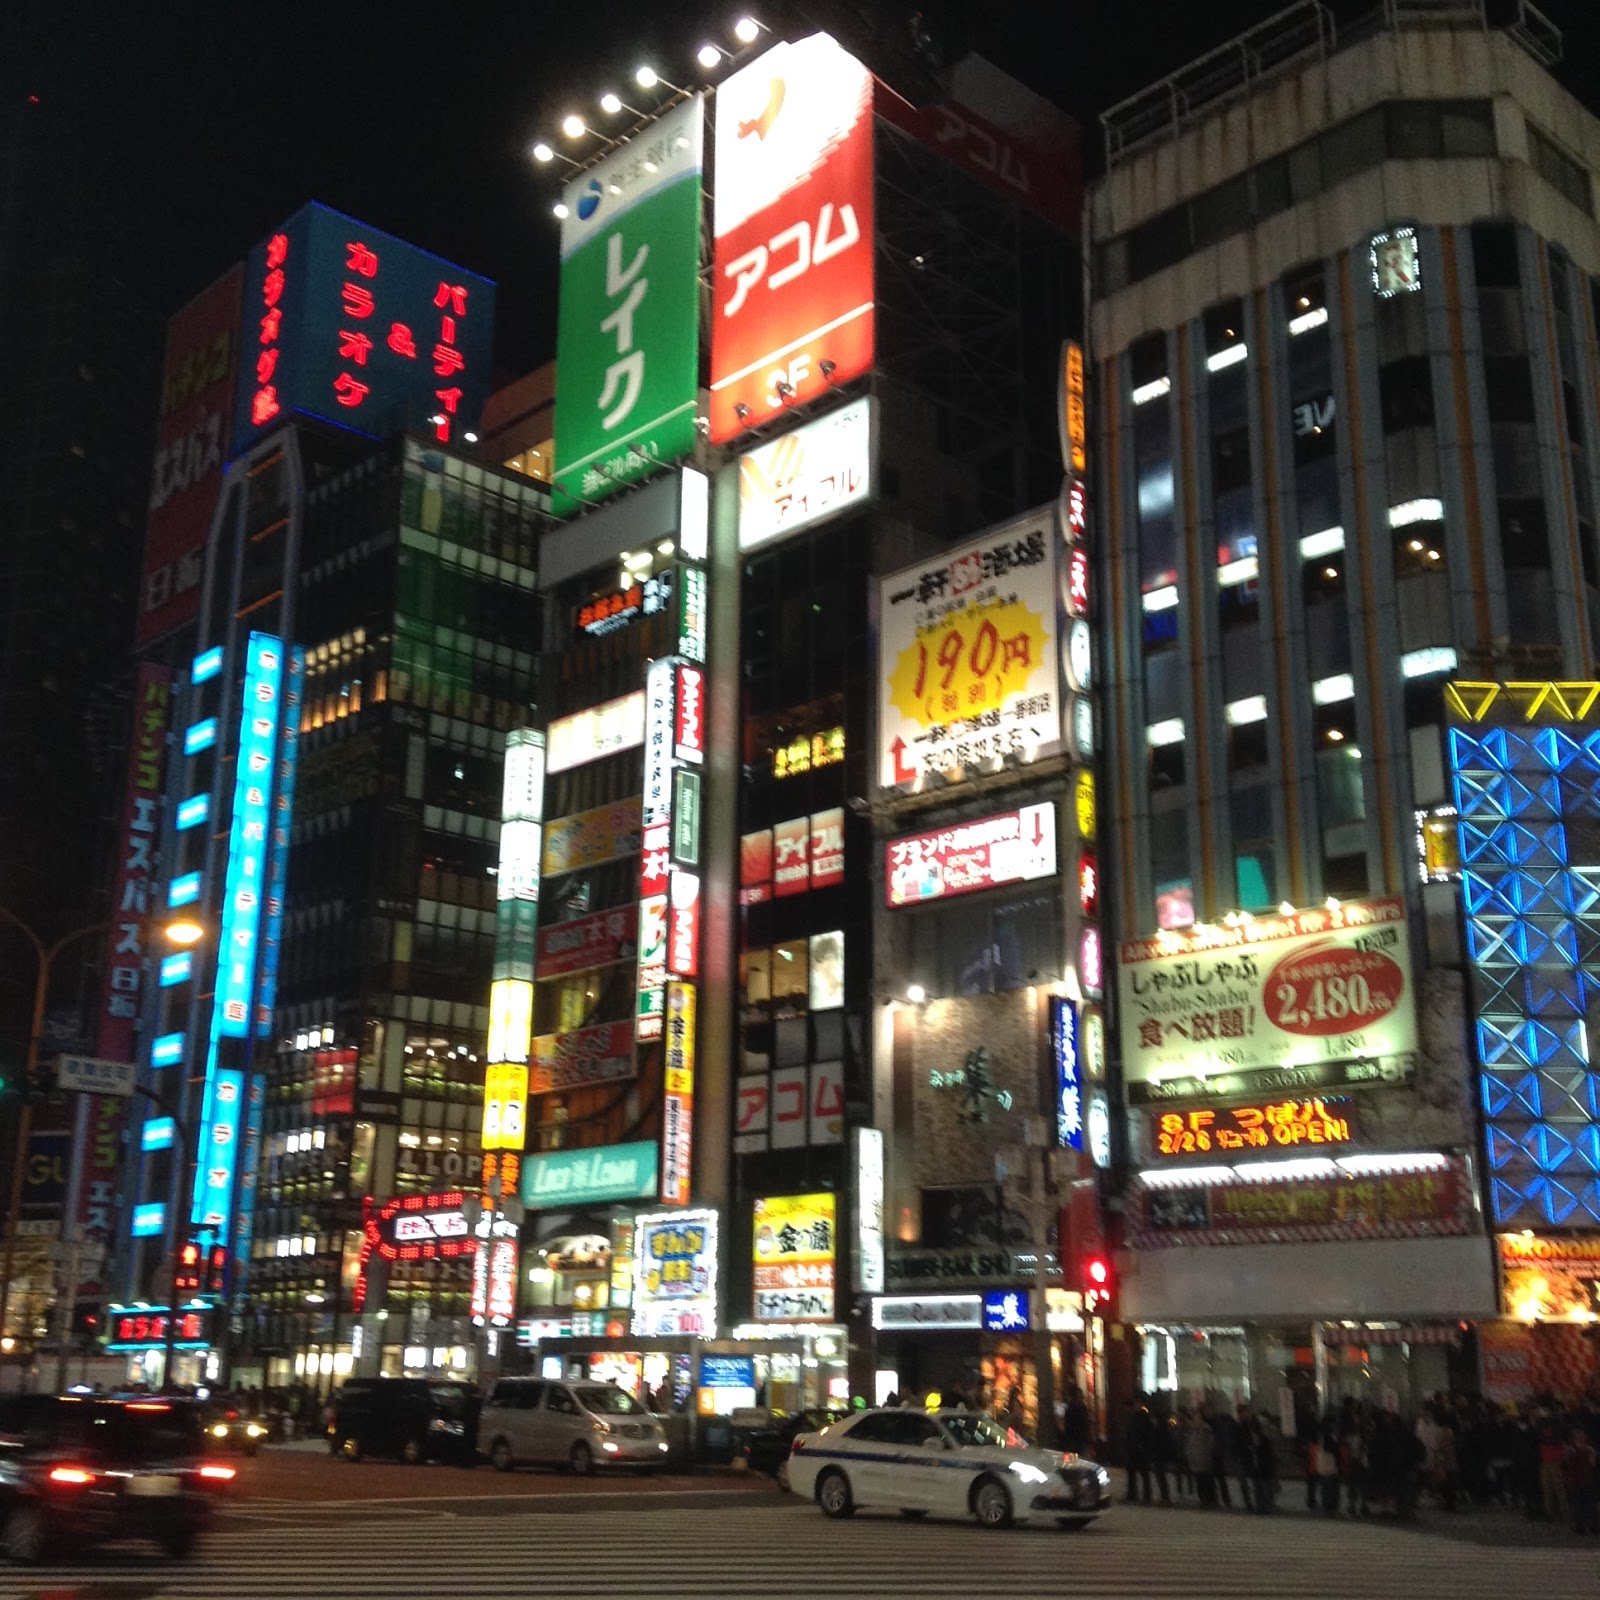 Shinjuku street at night